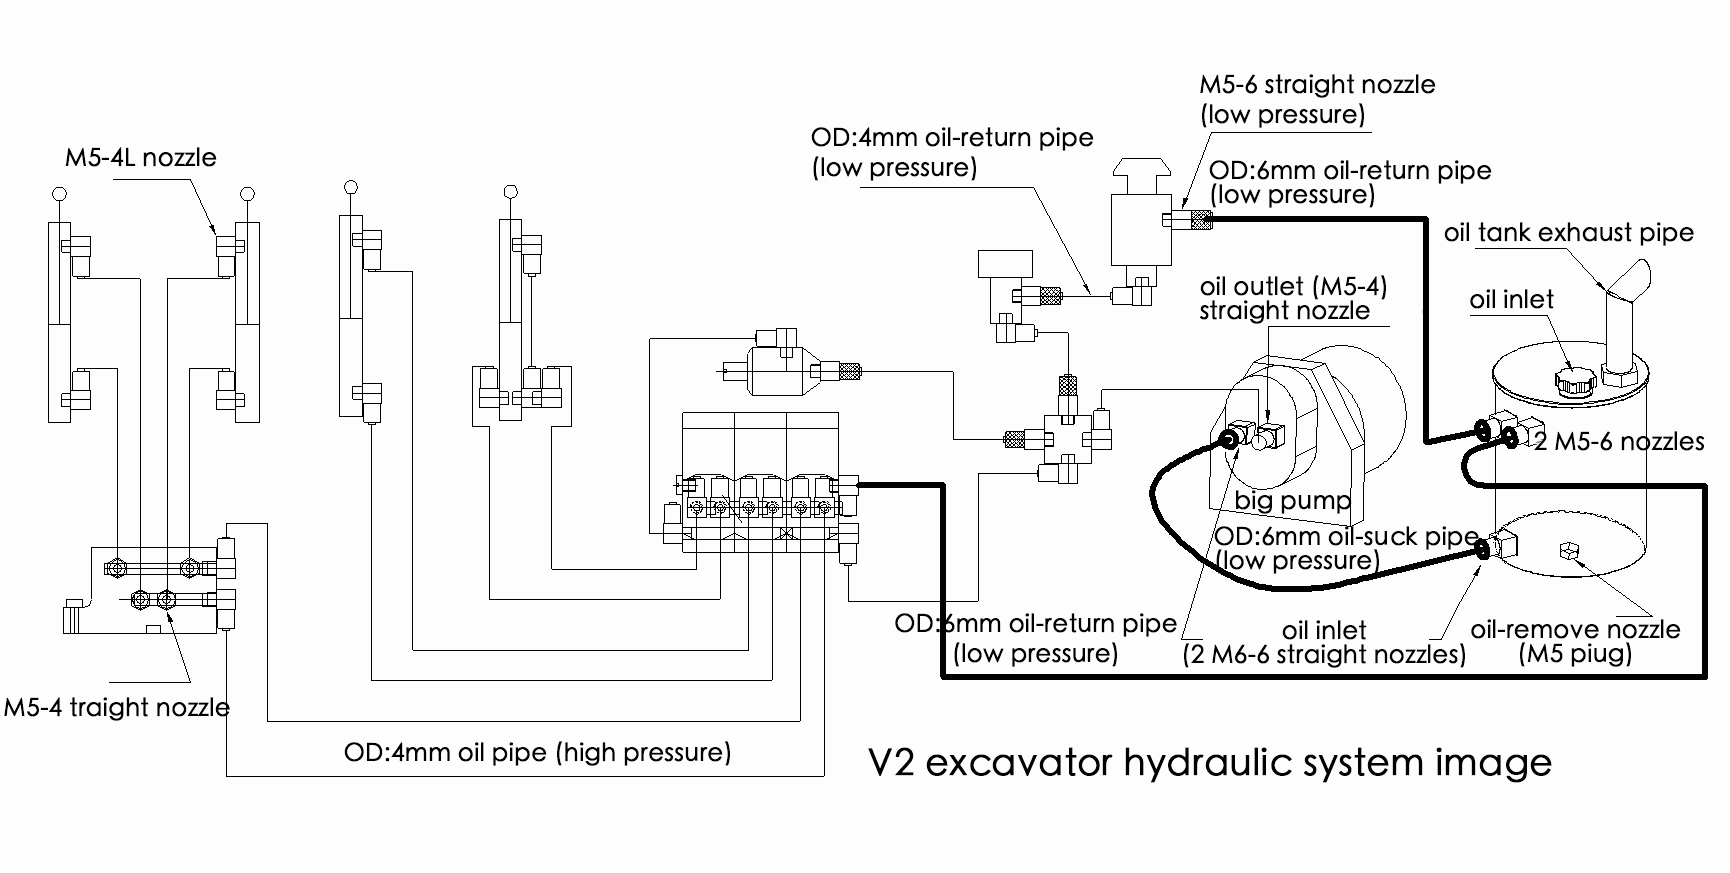 [DIAGRAM] Haldex 12 Volt Hydraulic Pump Wiring Diagram